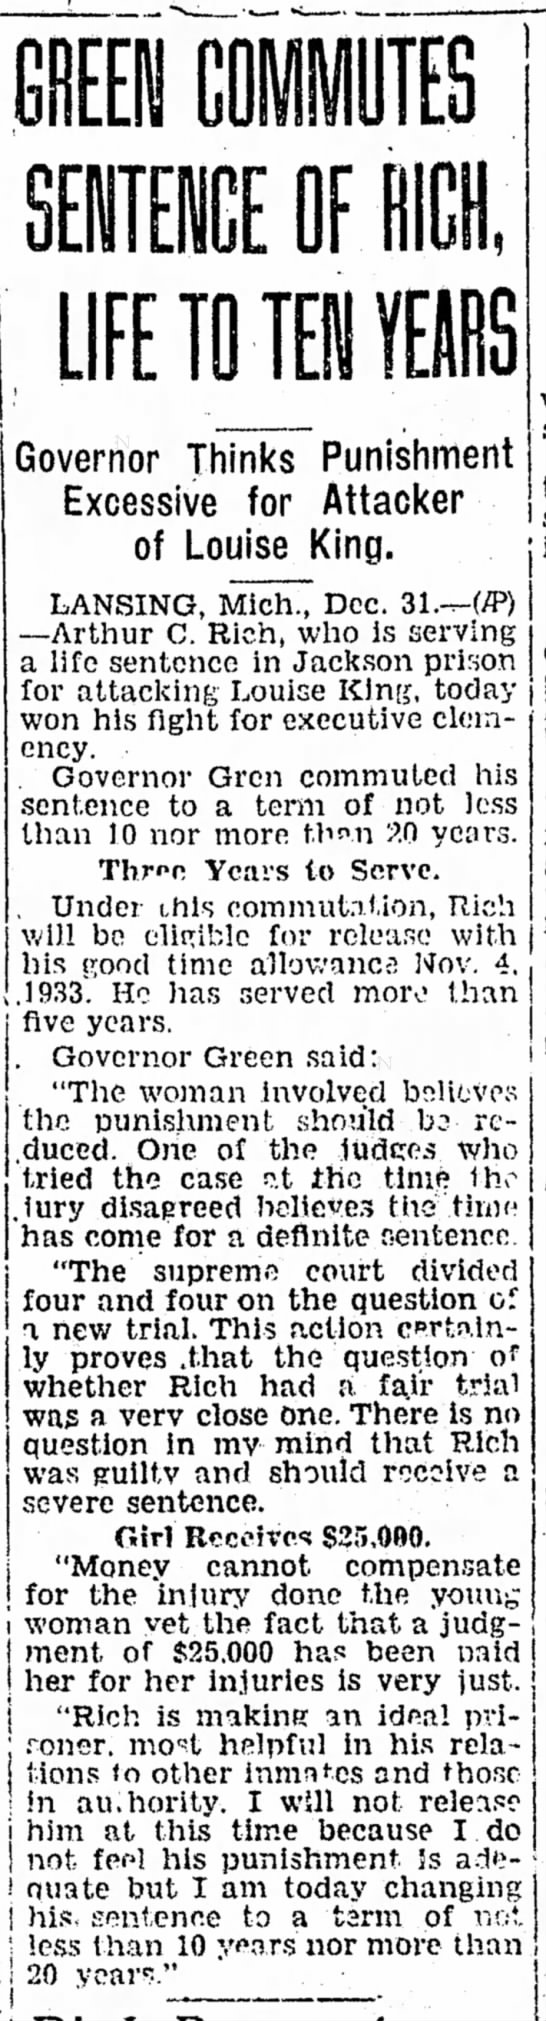 12/31/1930Rich sentence reduced to 10 yrs Daily News Ludington Post -